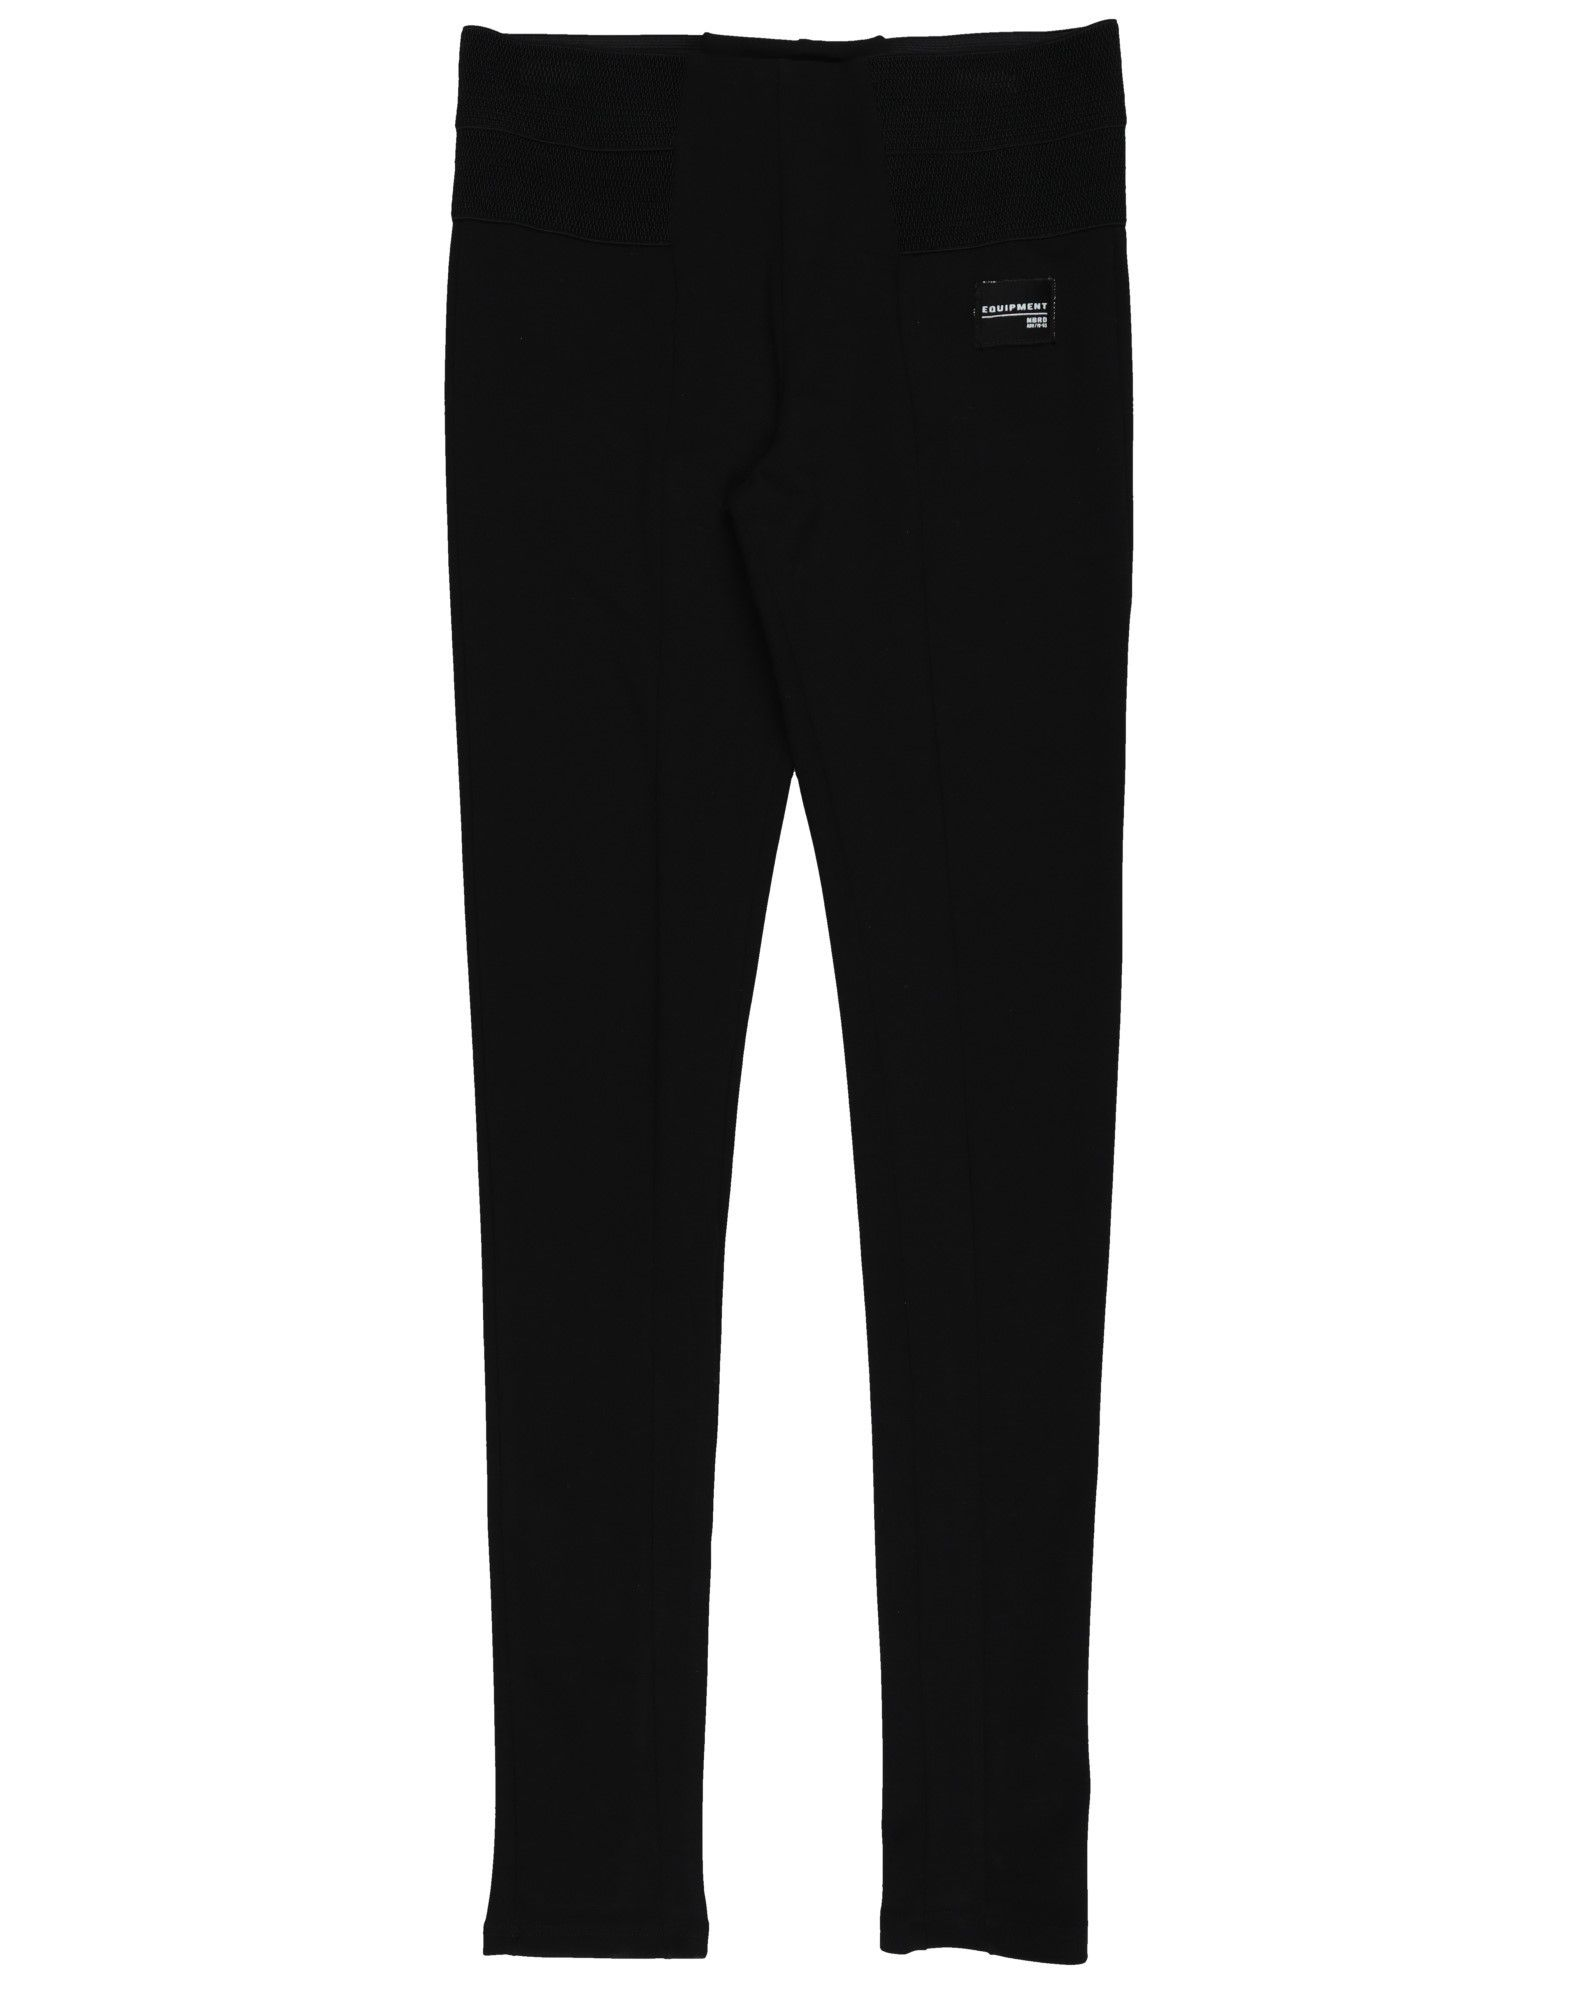 Nbrd No Brand Kids' Casual Pants In Black